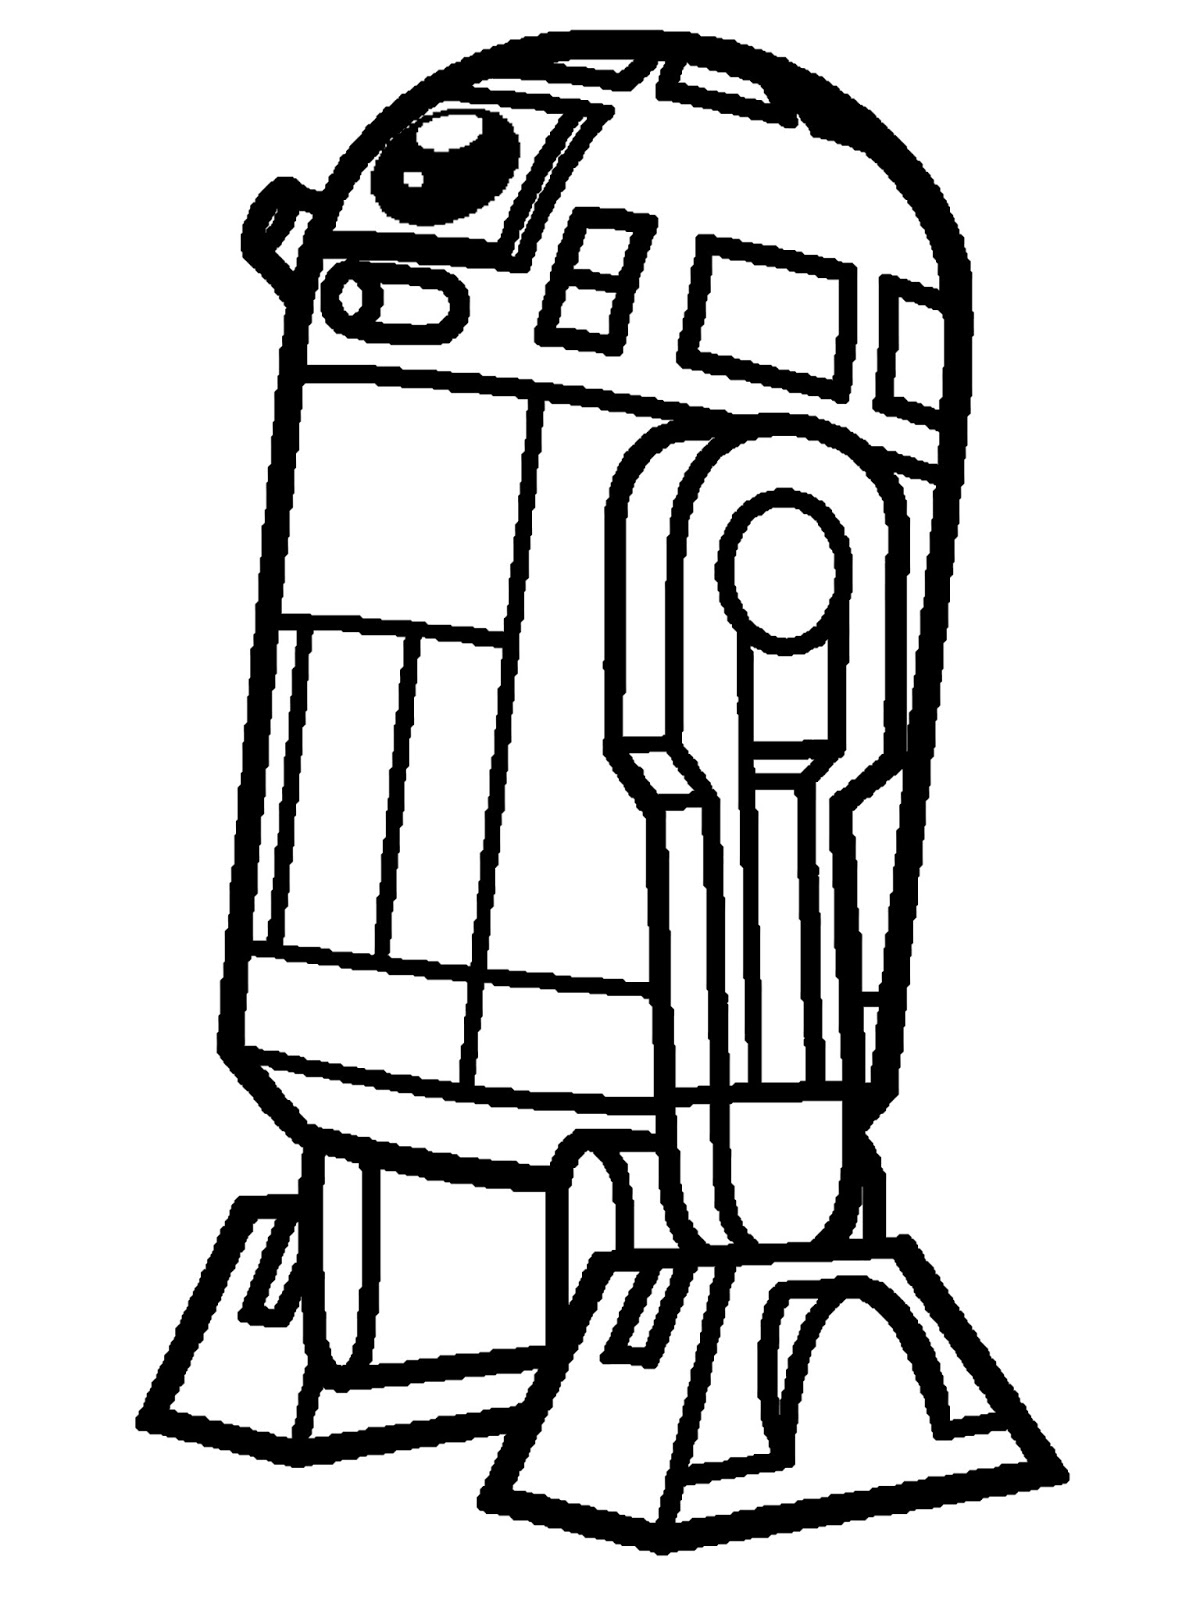 Doodlecraft: R2D2 Shirt!